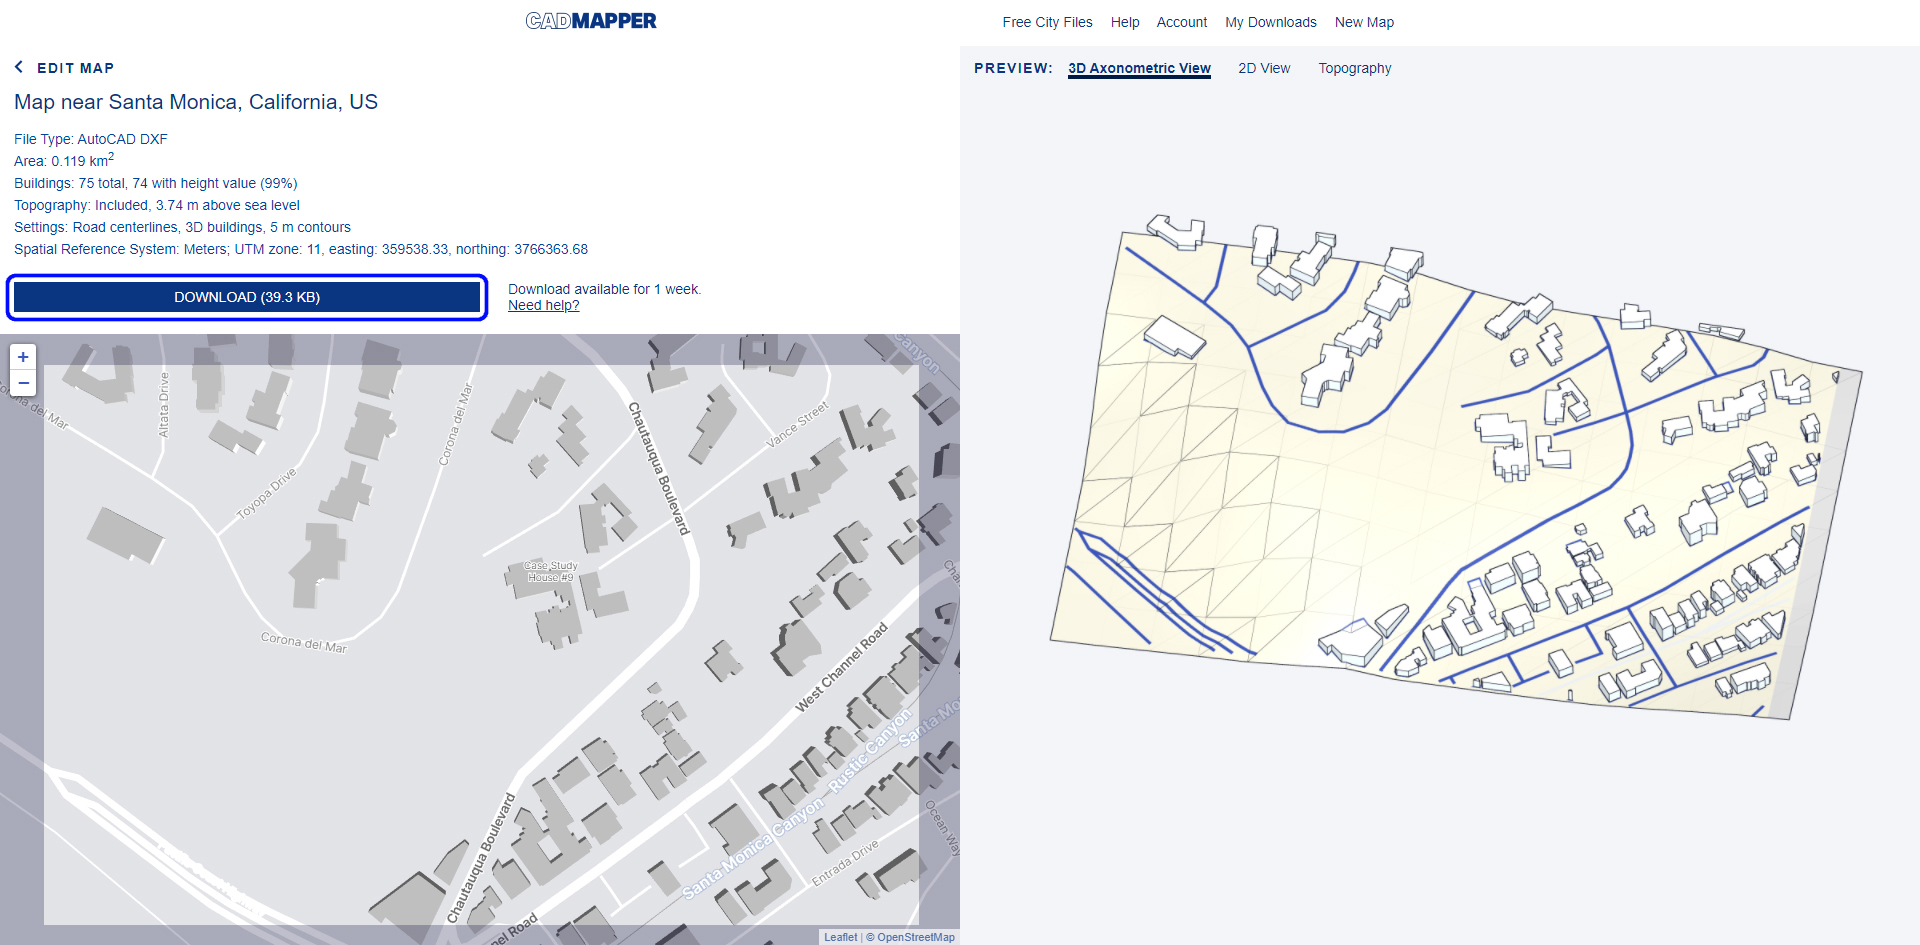 It shows the CAD mapper website for the Eames house project.